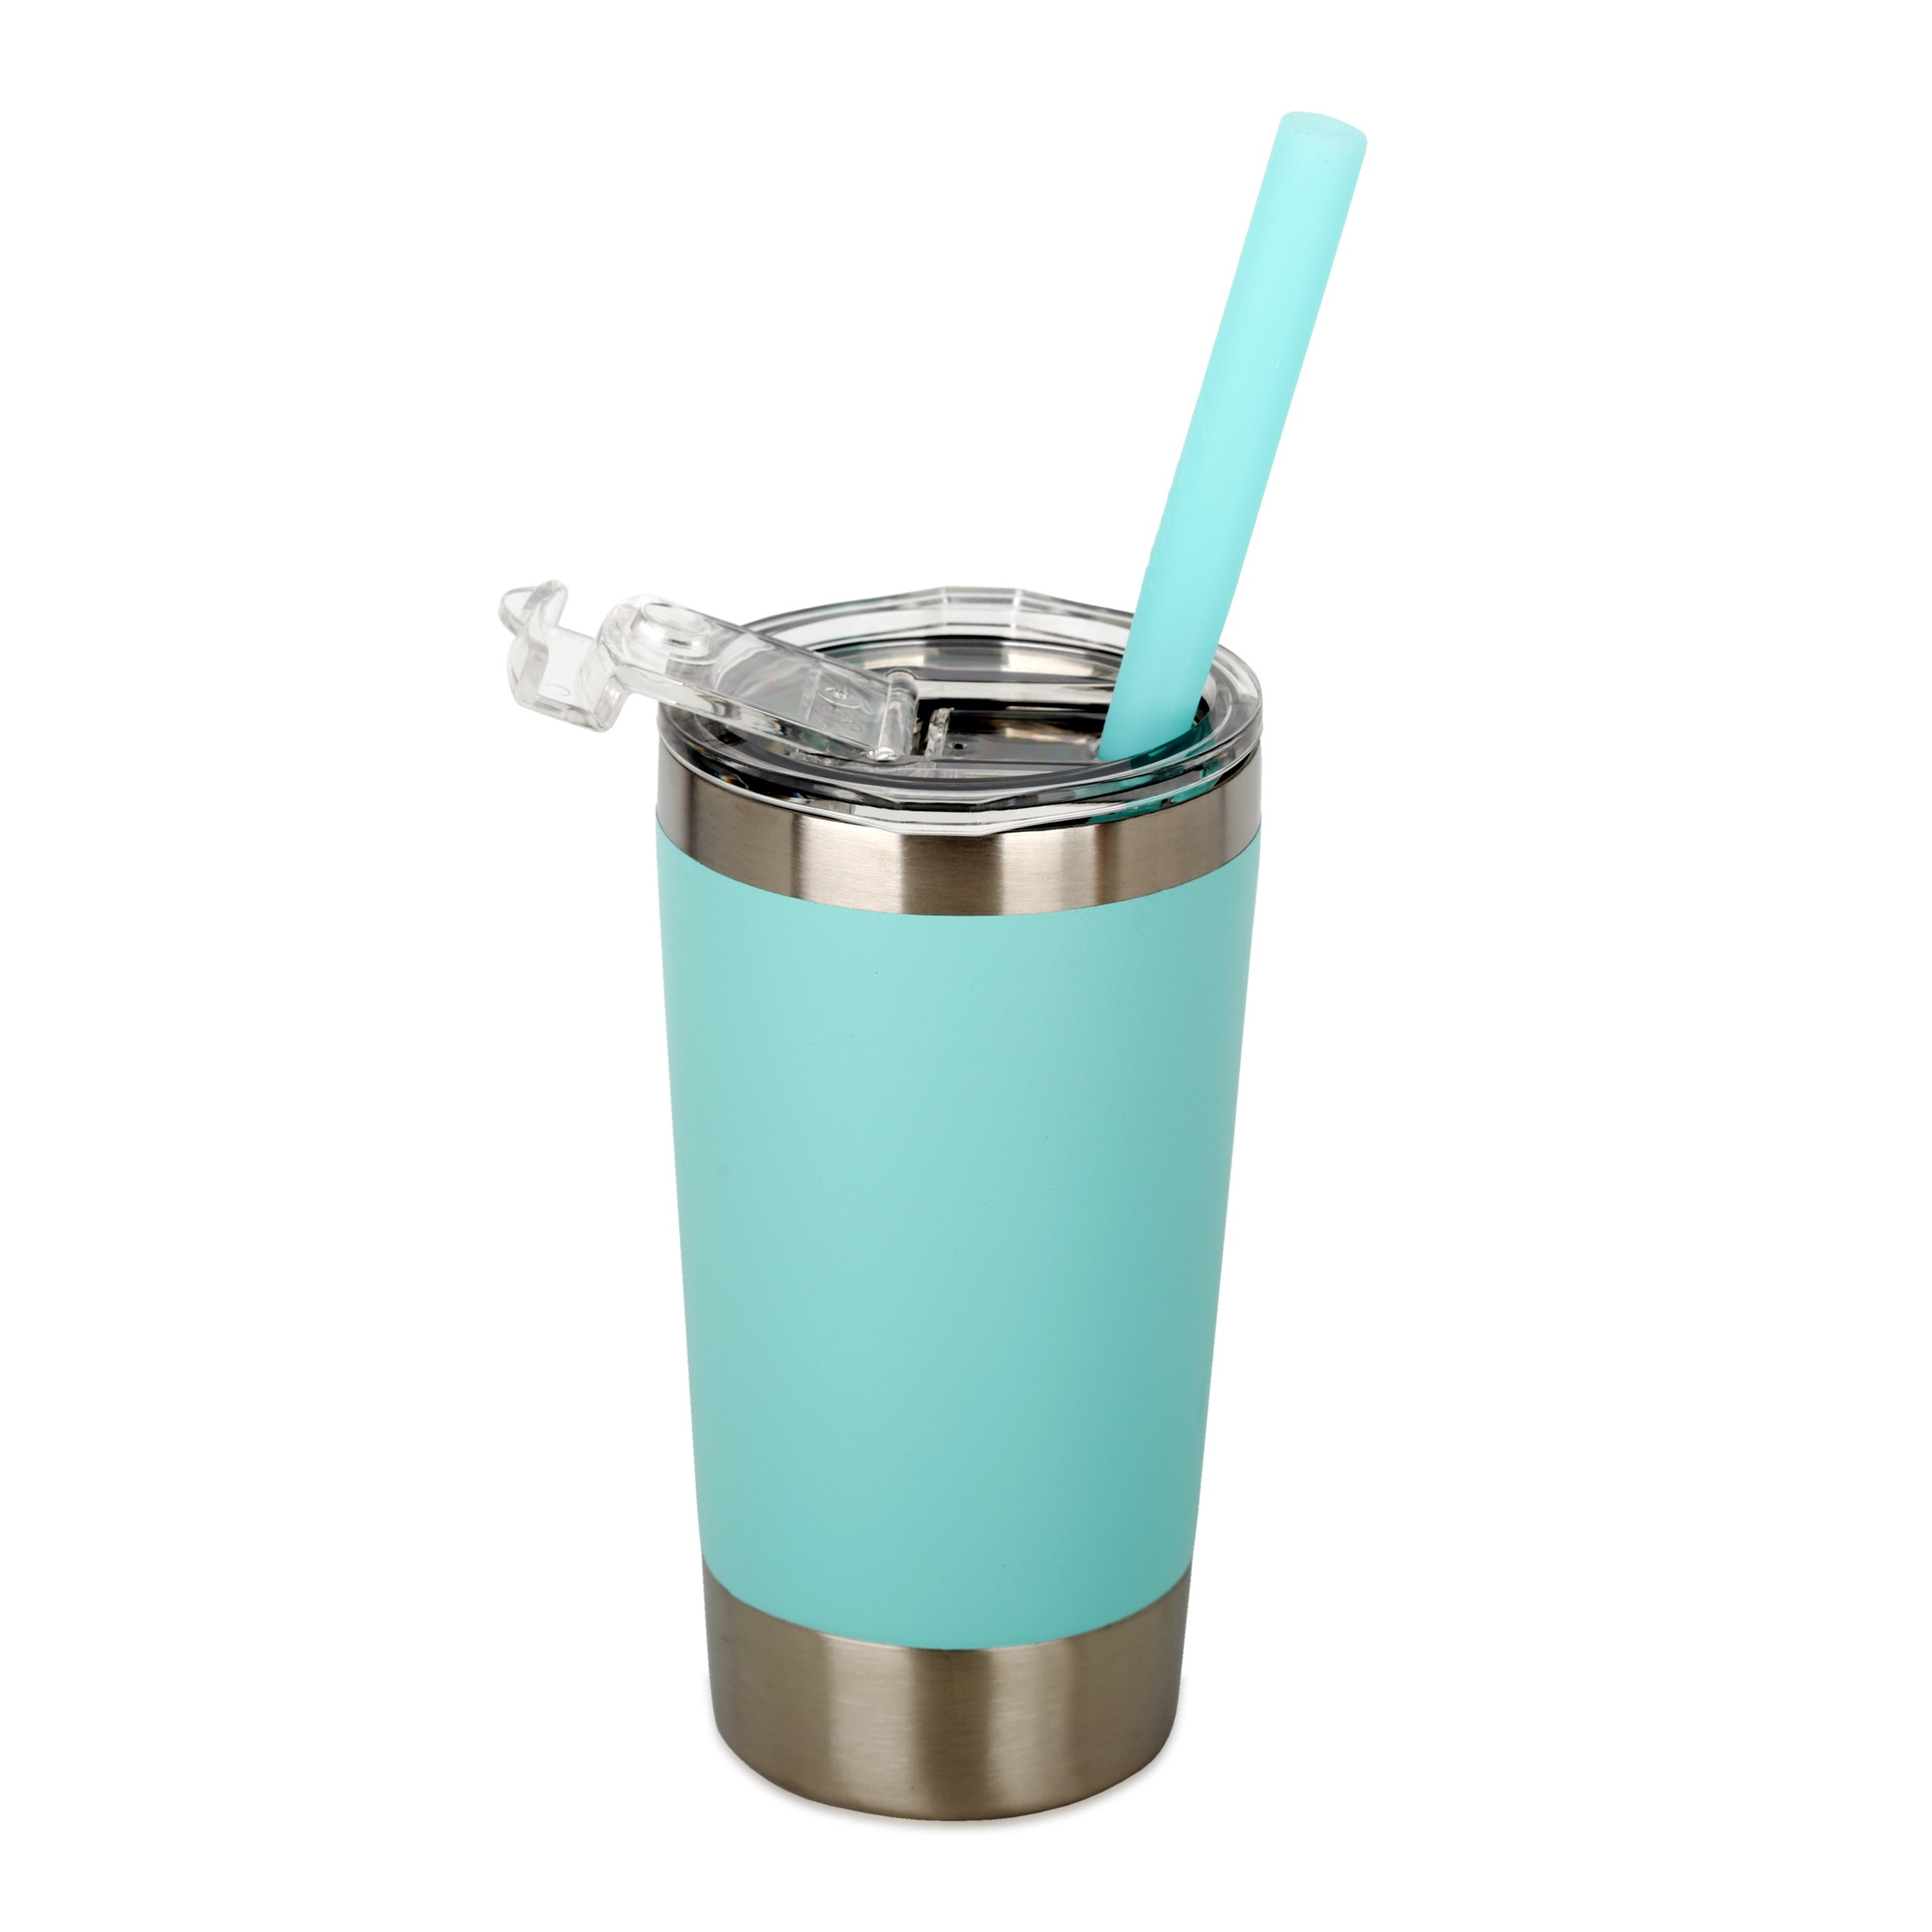 Housavvy Kids Tumbler Double-Walled Stainless Steel 12 oz, Teal